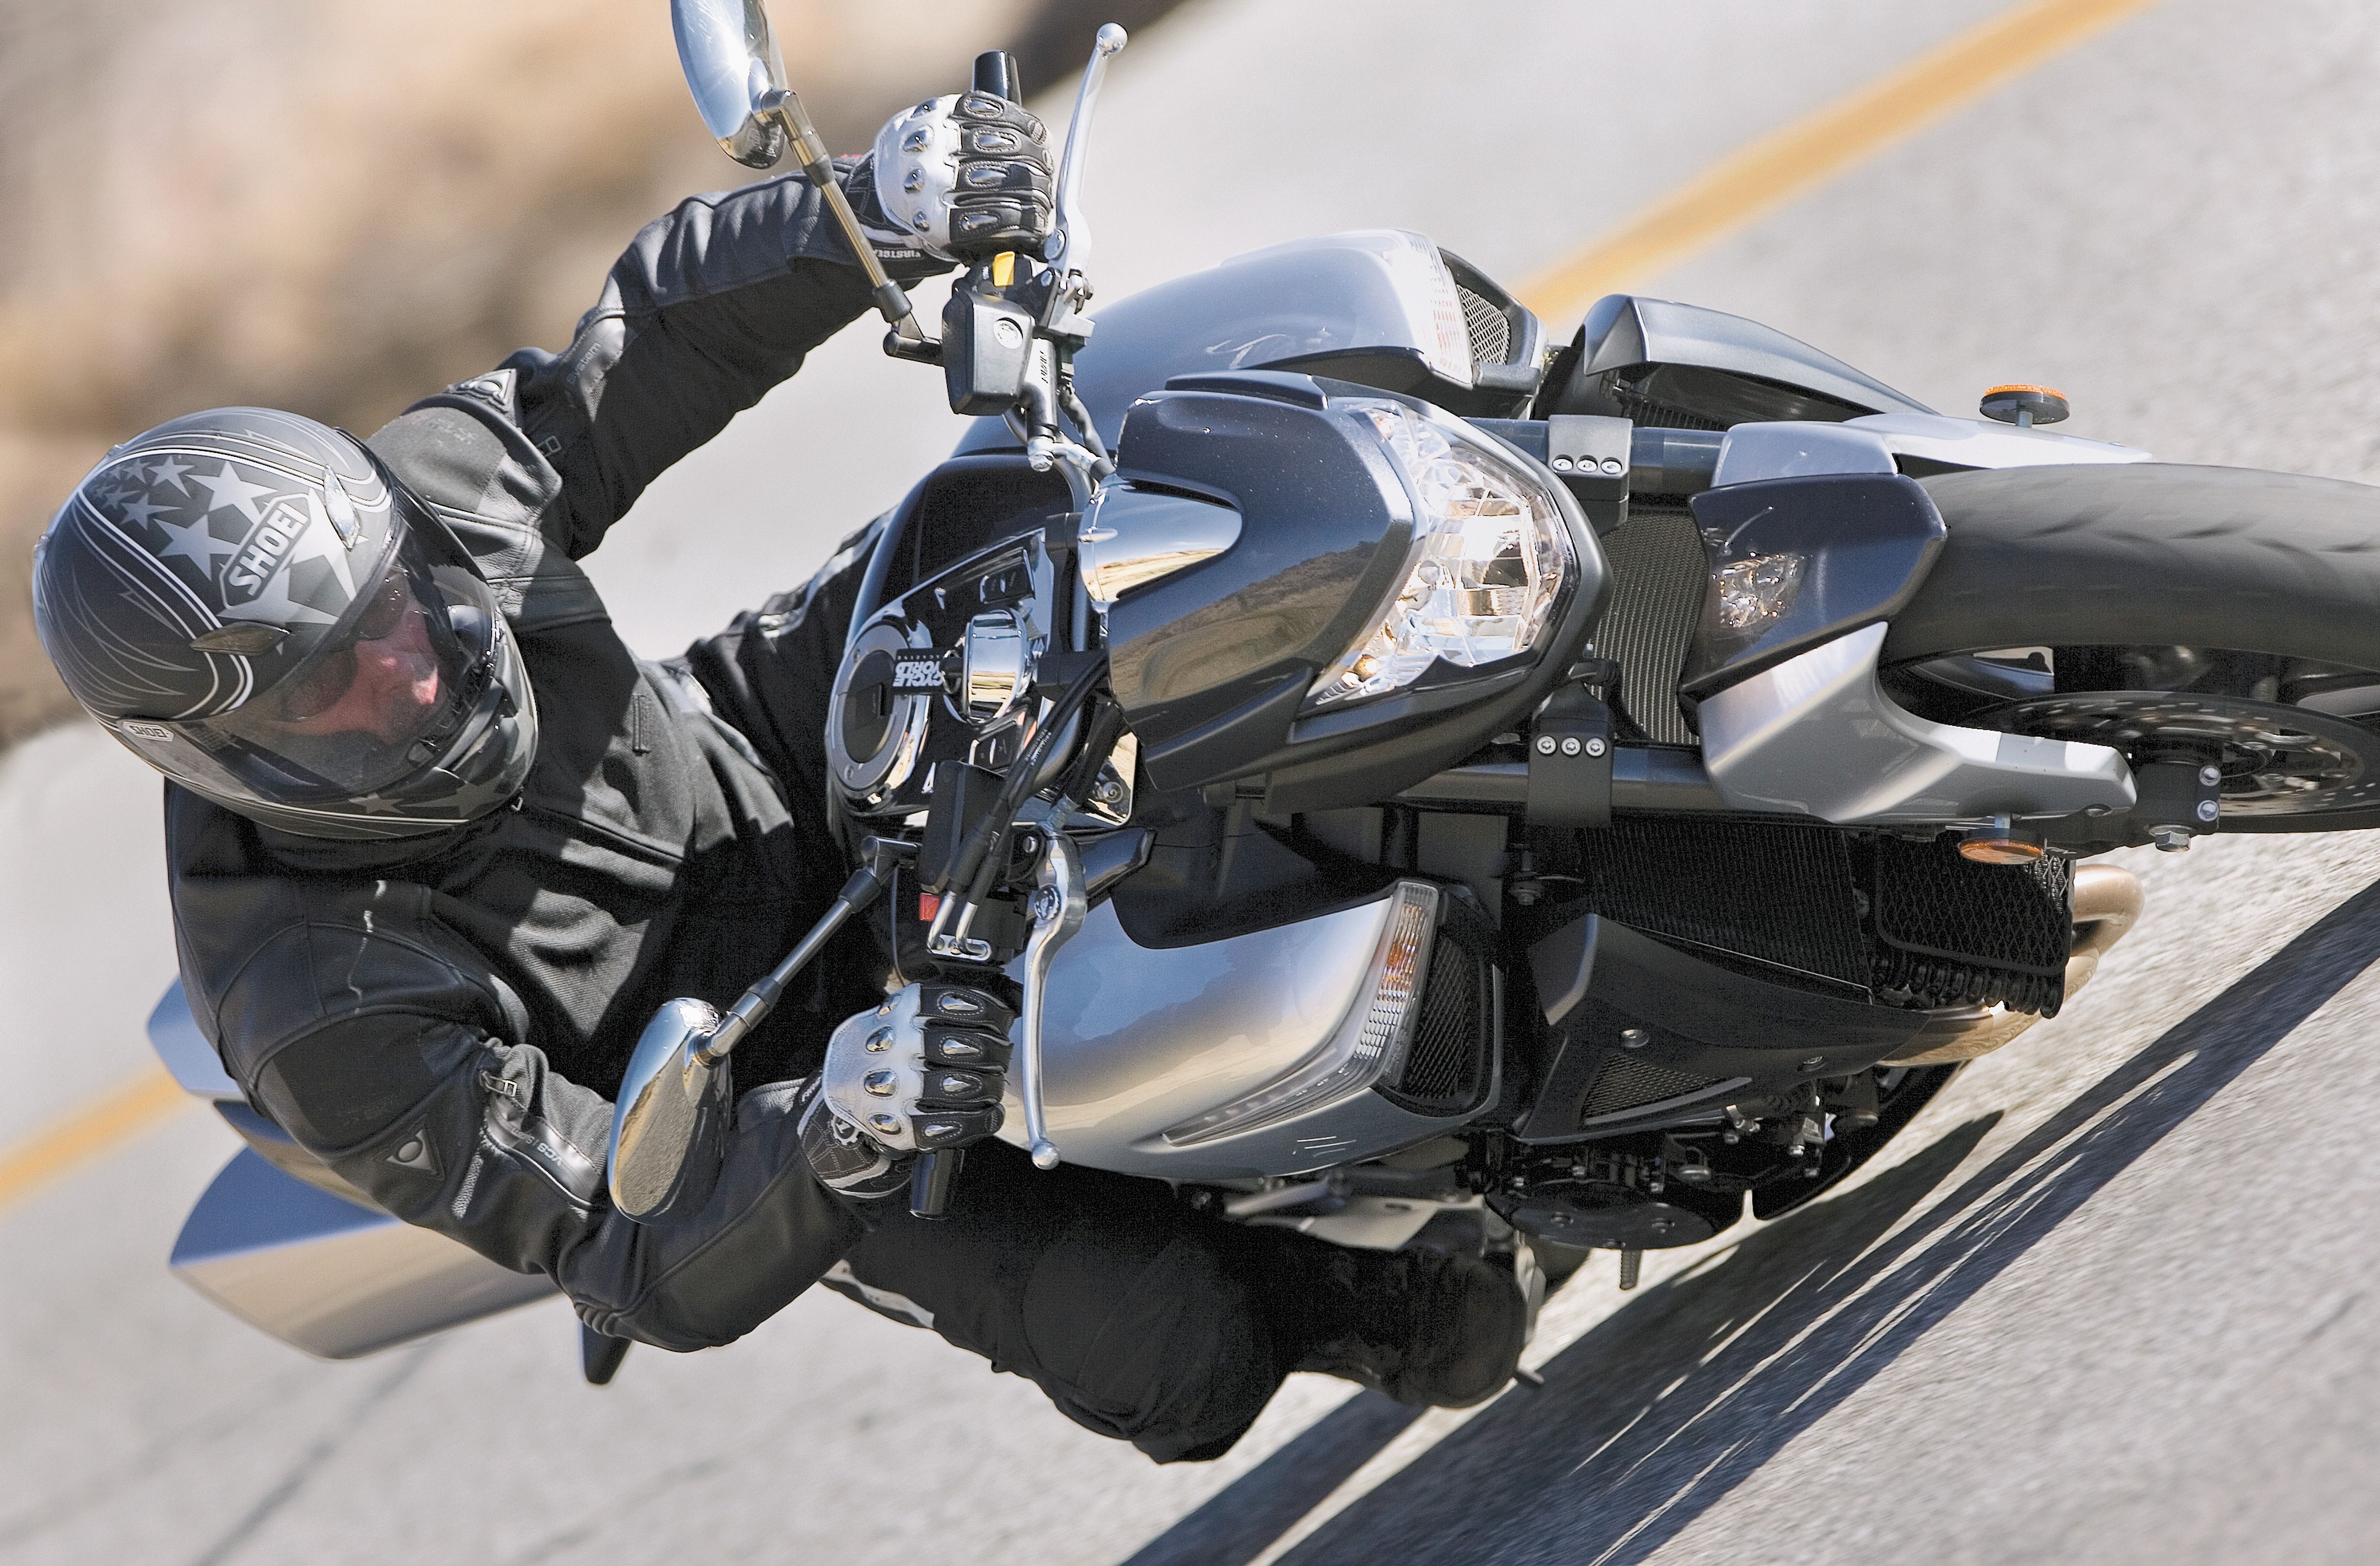 Suzuki B-King Naked Bike Motorcycle Review | Cycle World